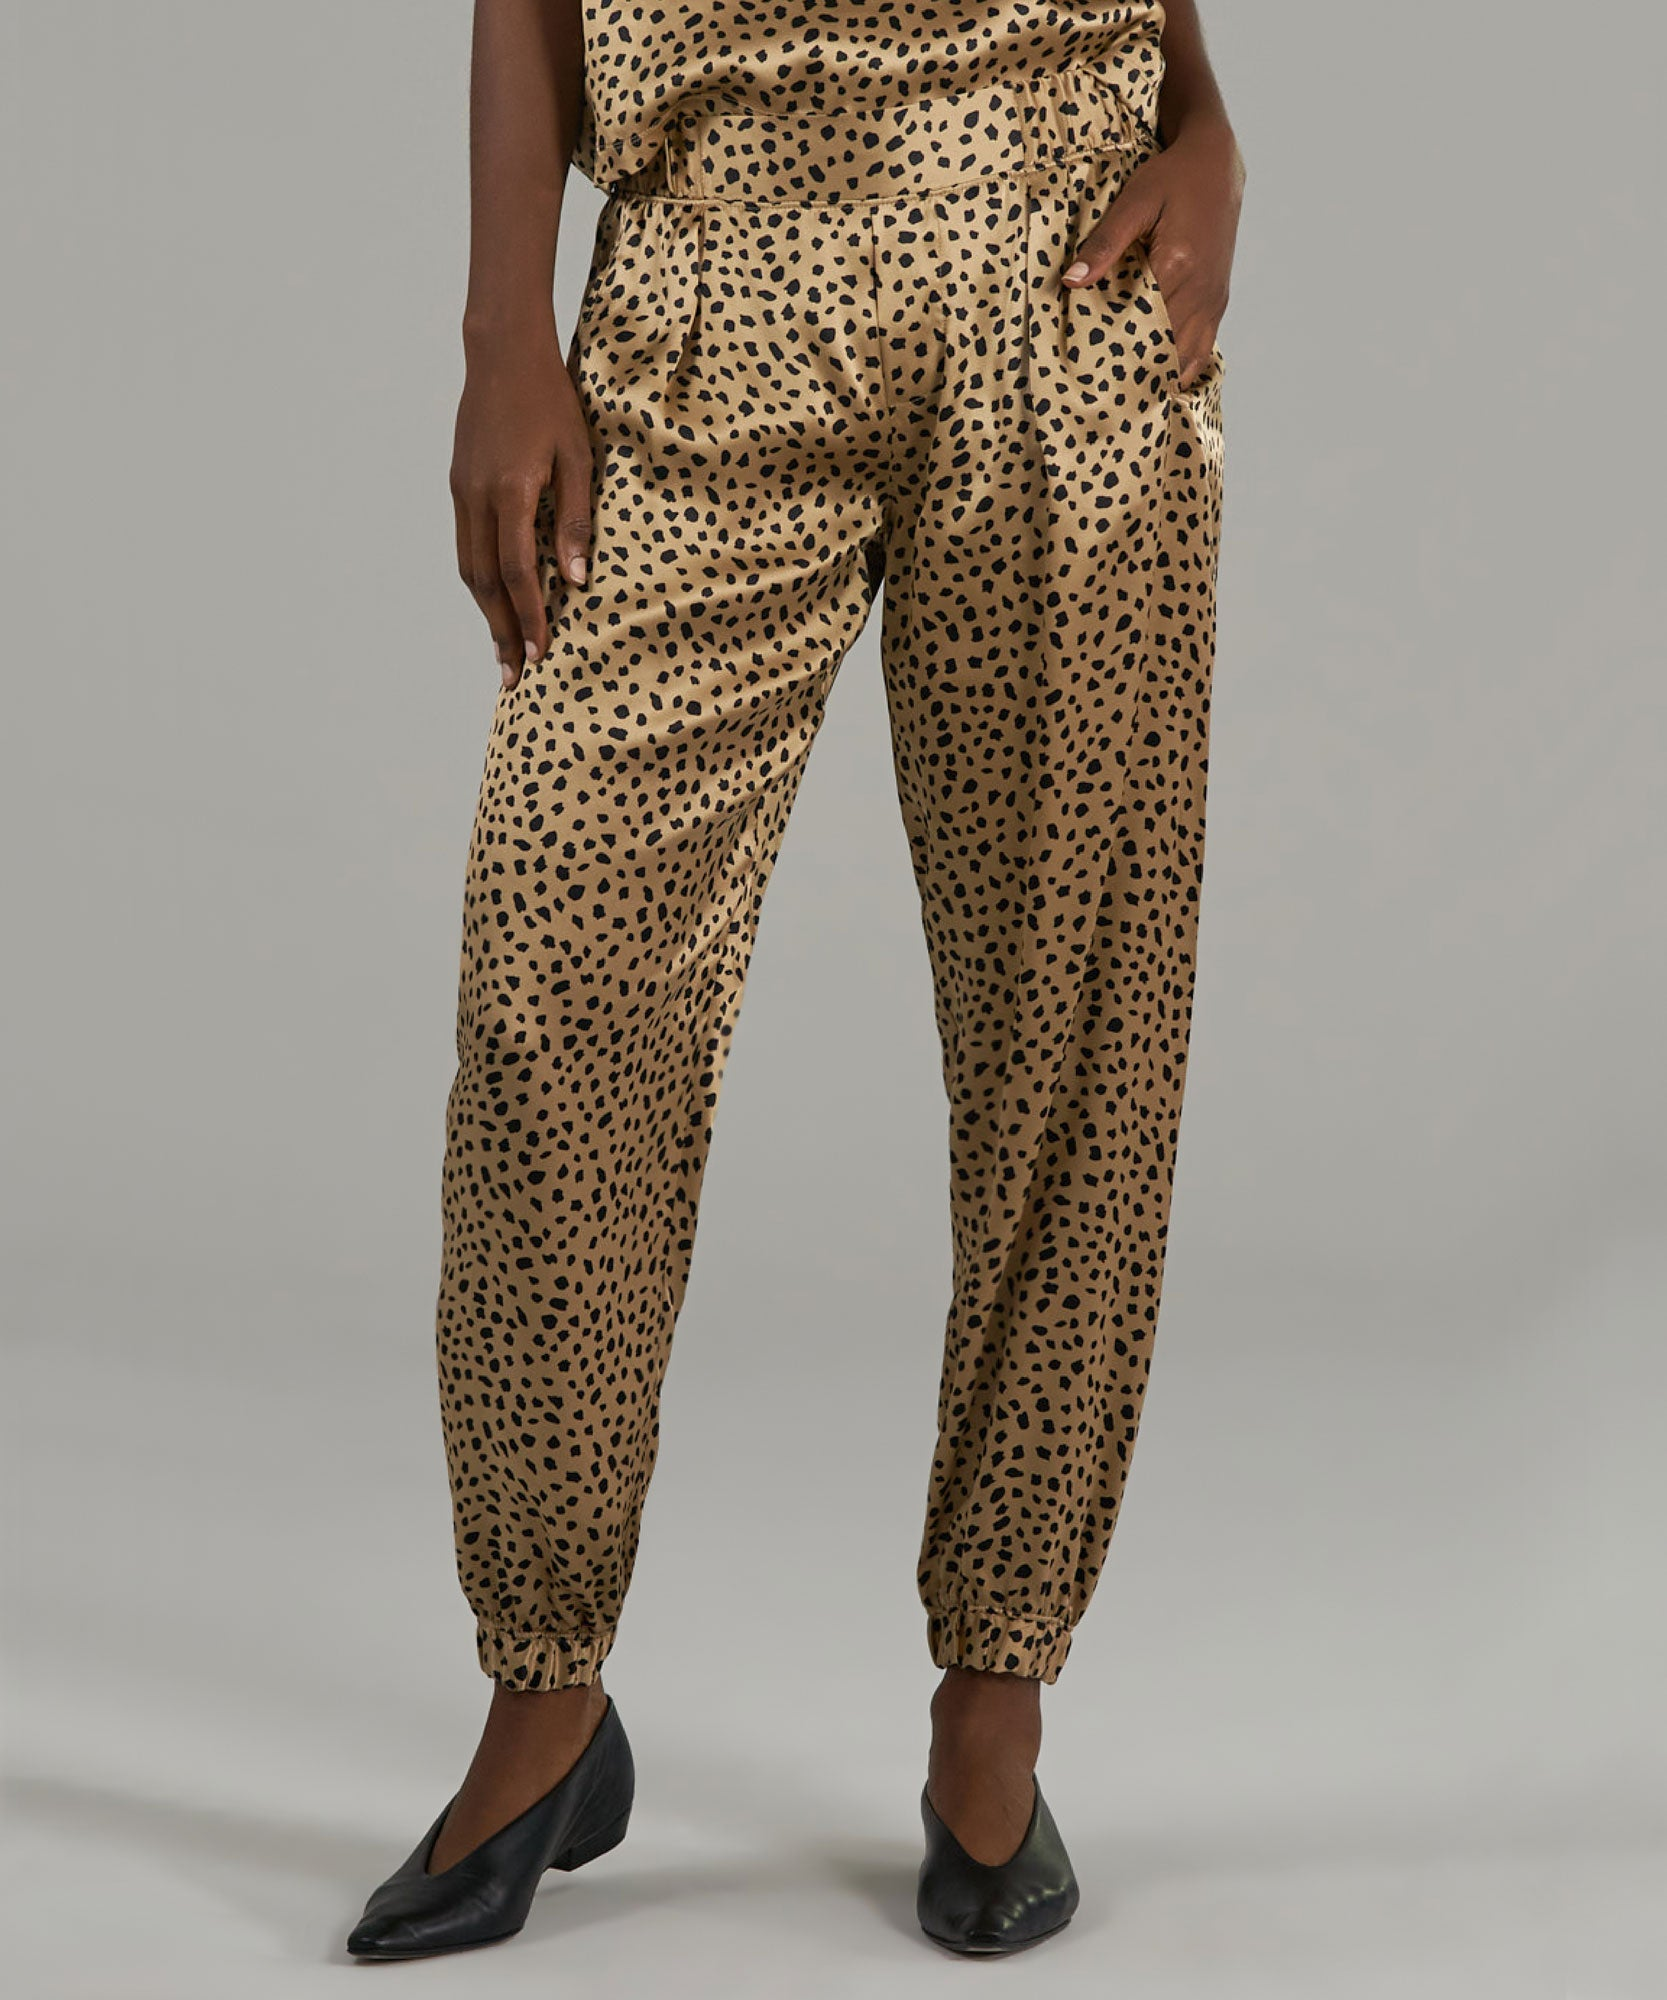 Camel and Black Cheetah Print Silk Pants - Women's Silk Pants by ATM Anthony Thomas Melillo